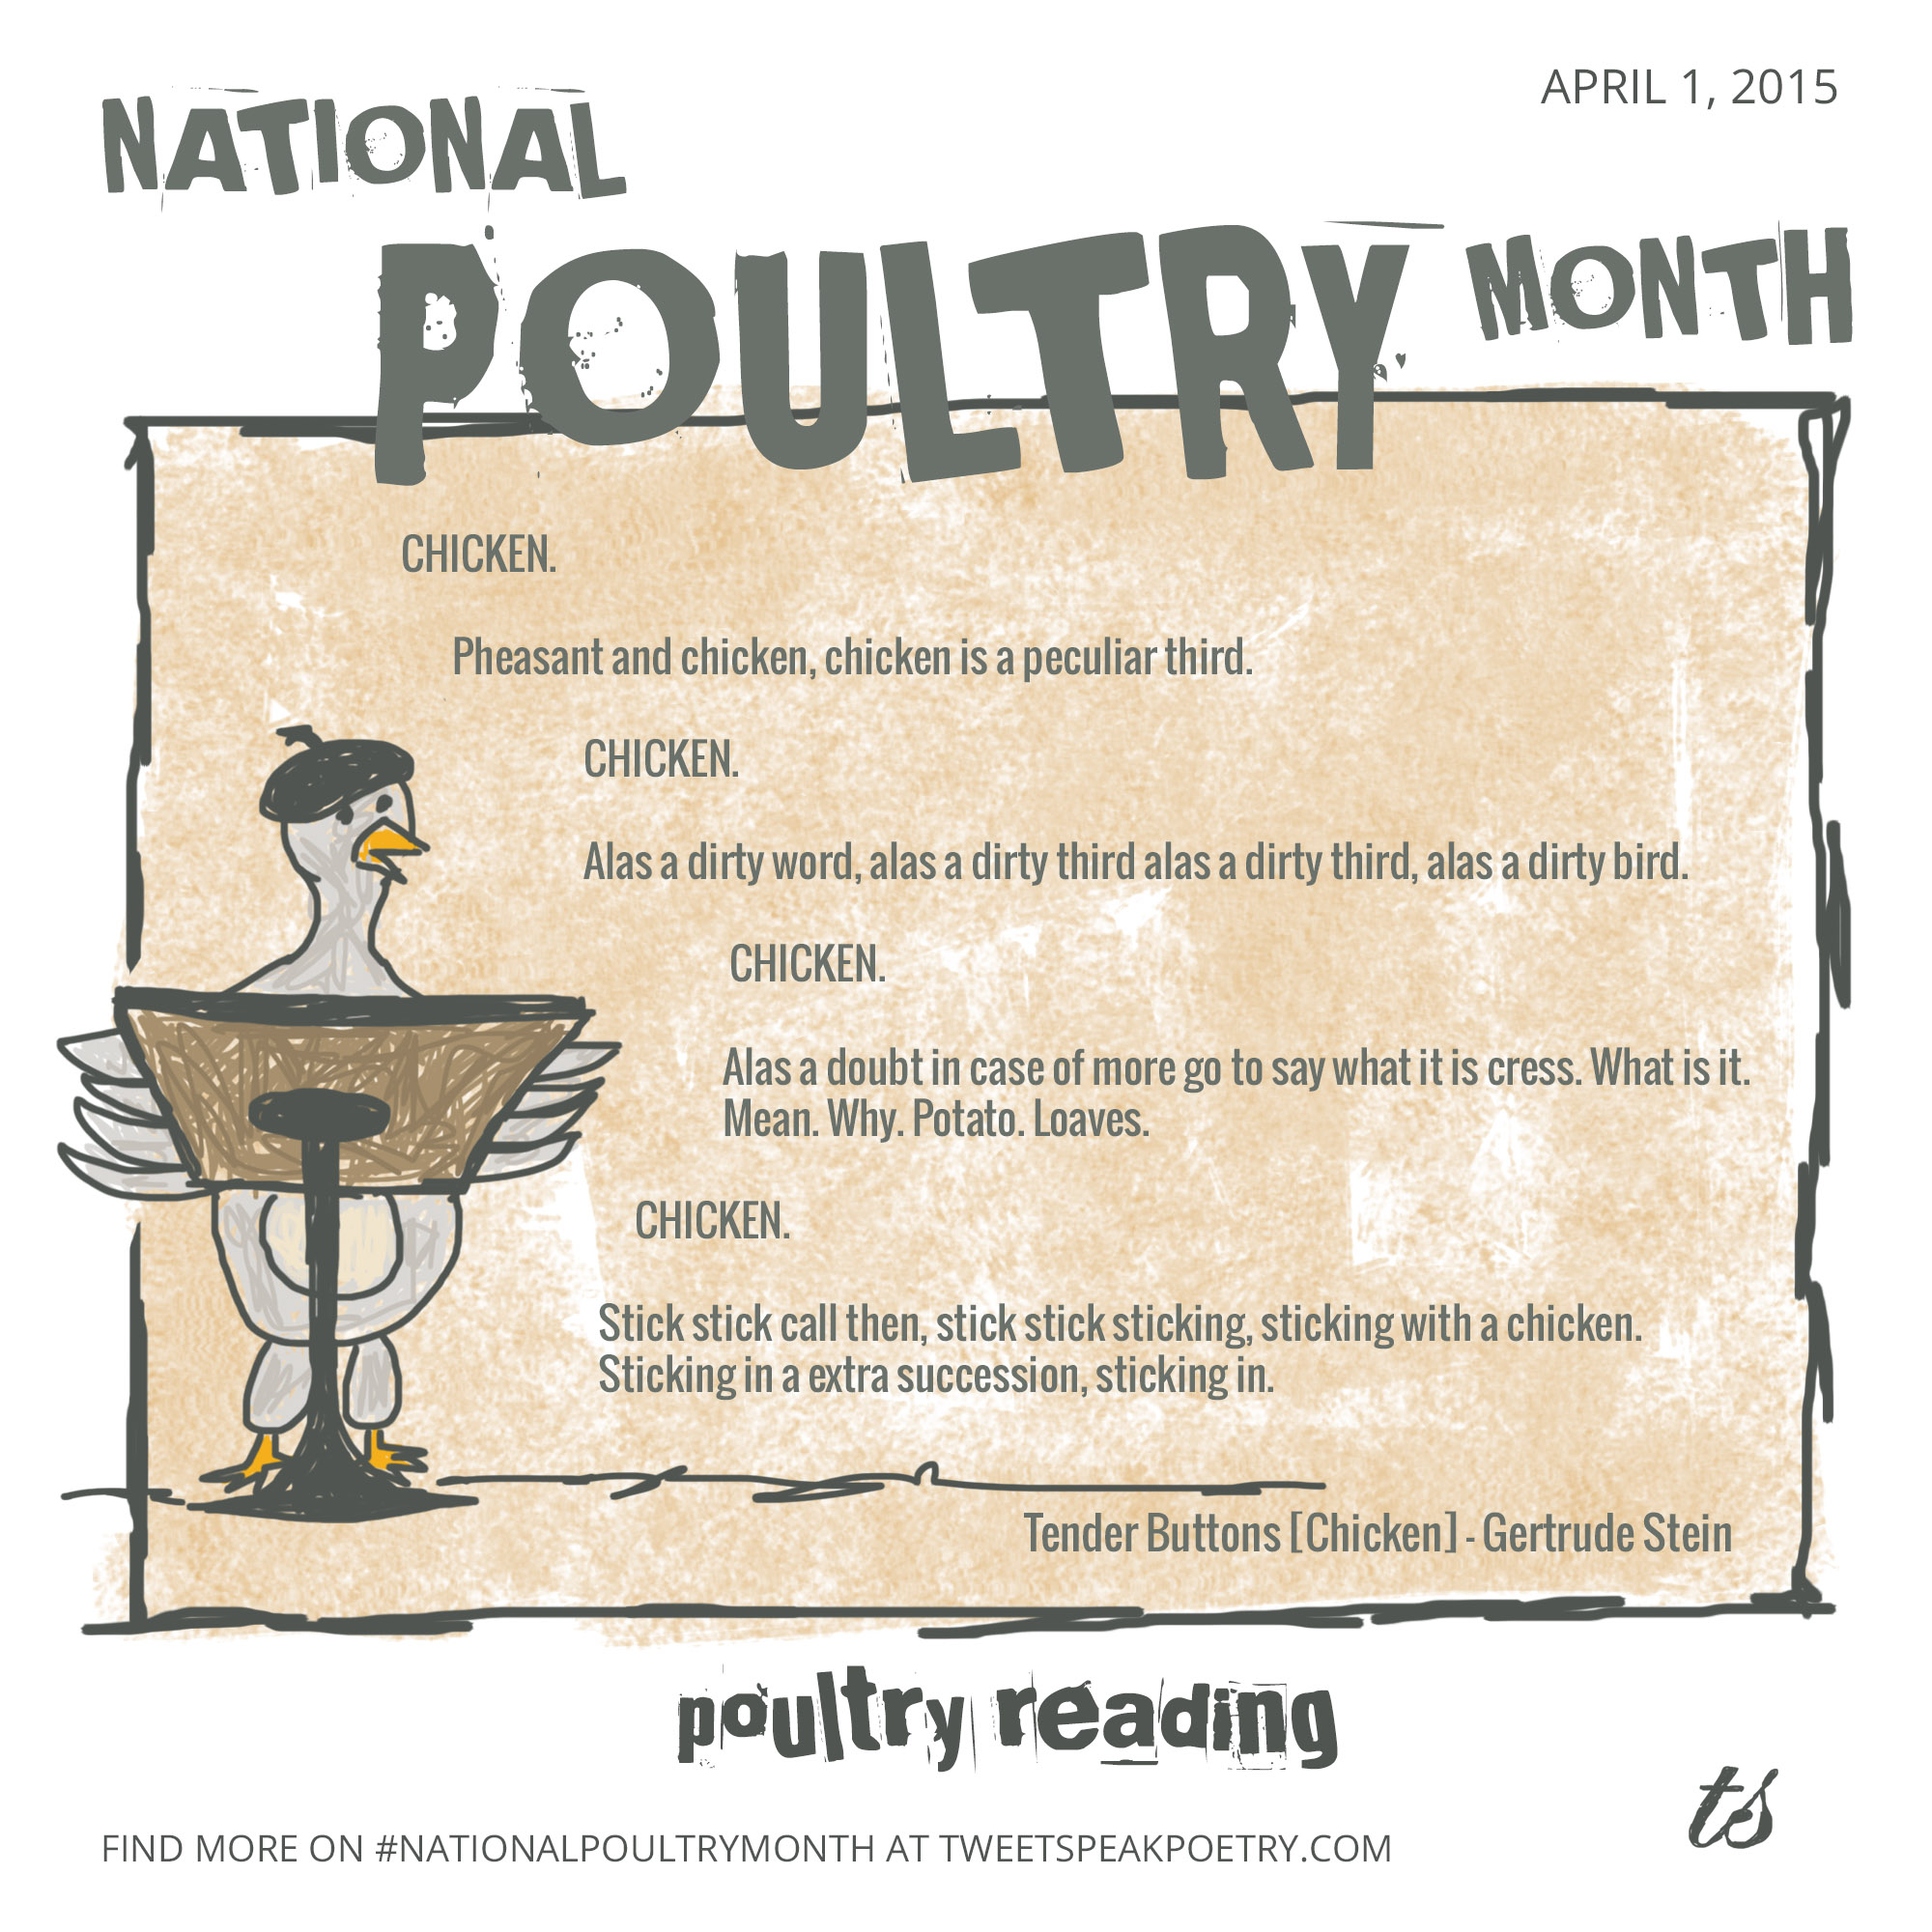 National Poultry Month: Poultry Reading